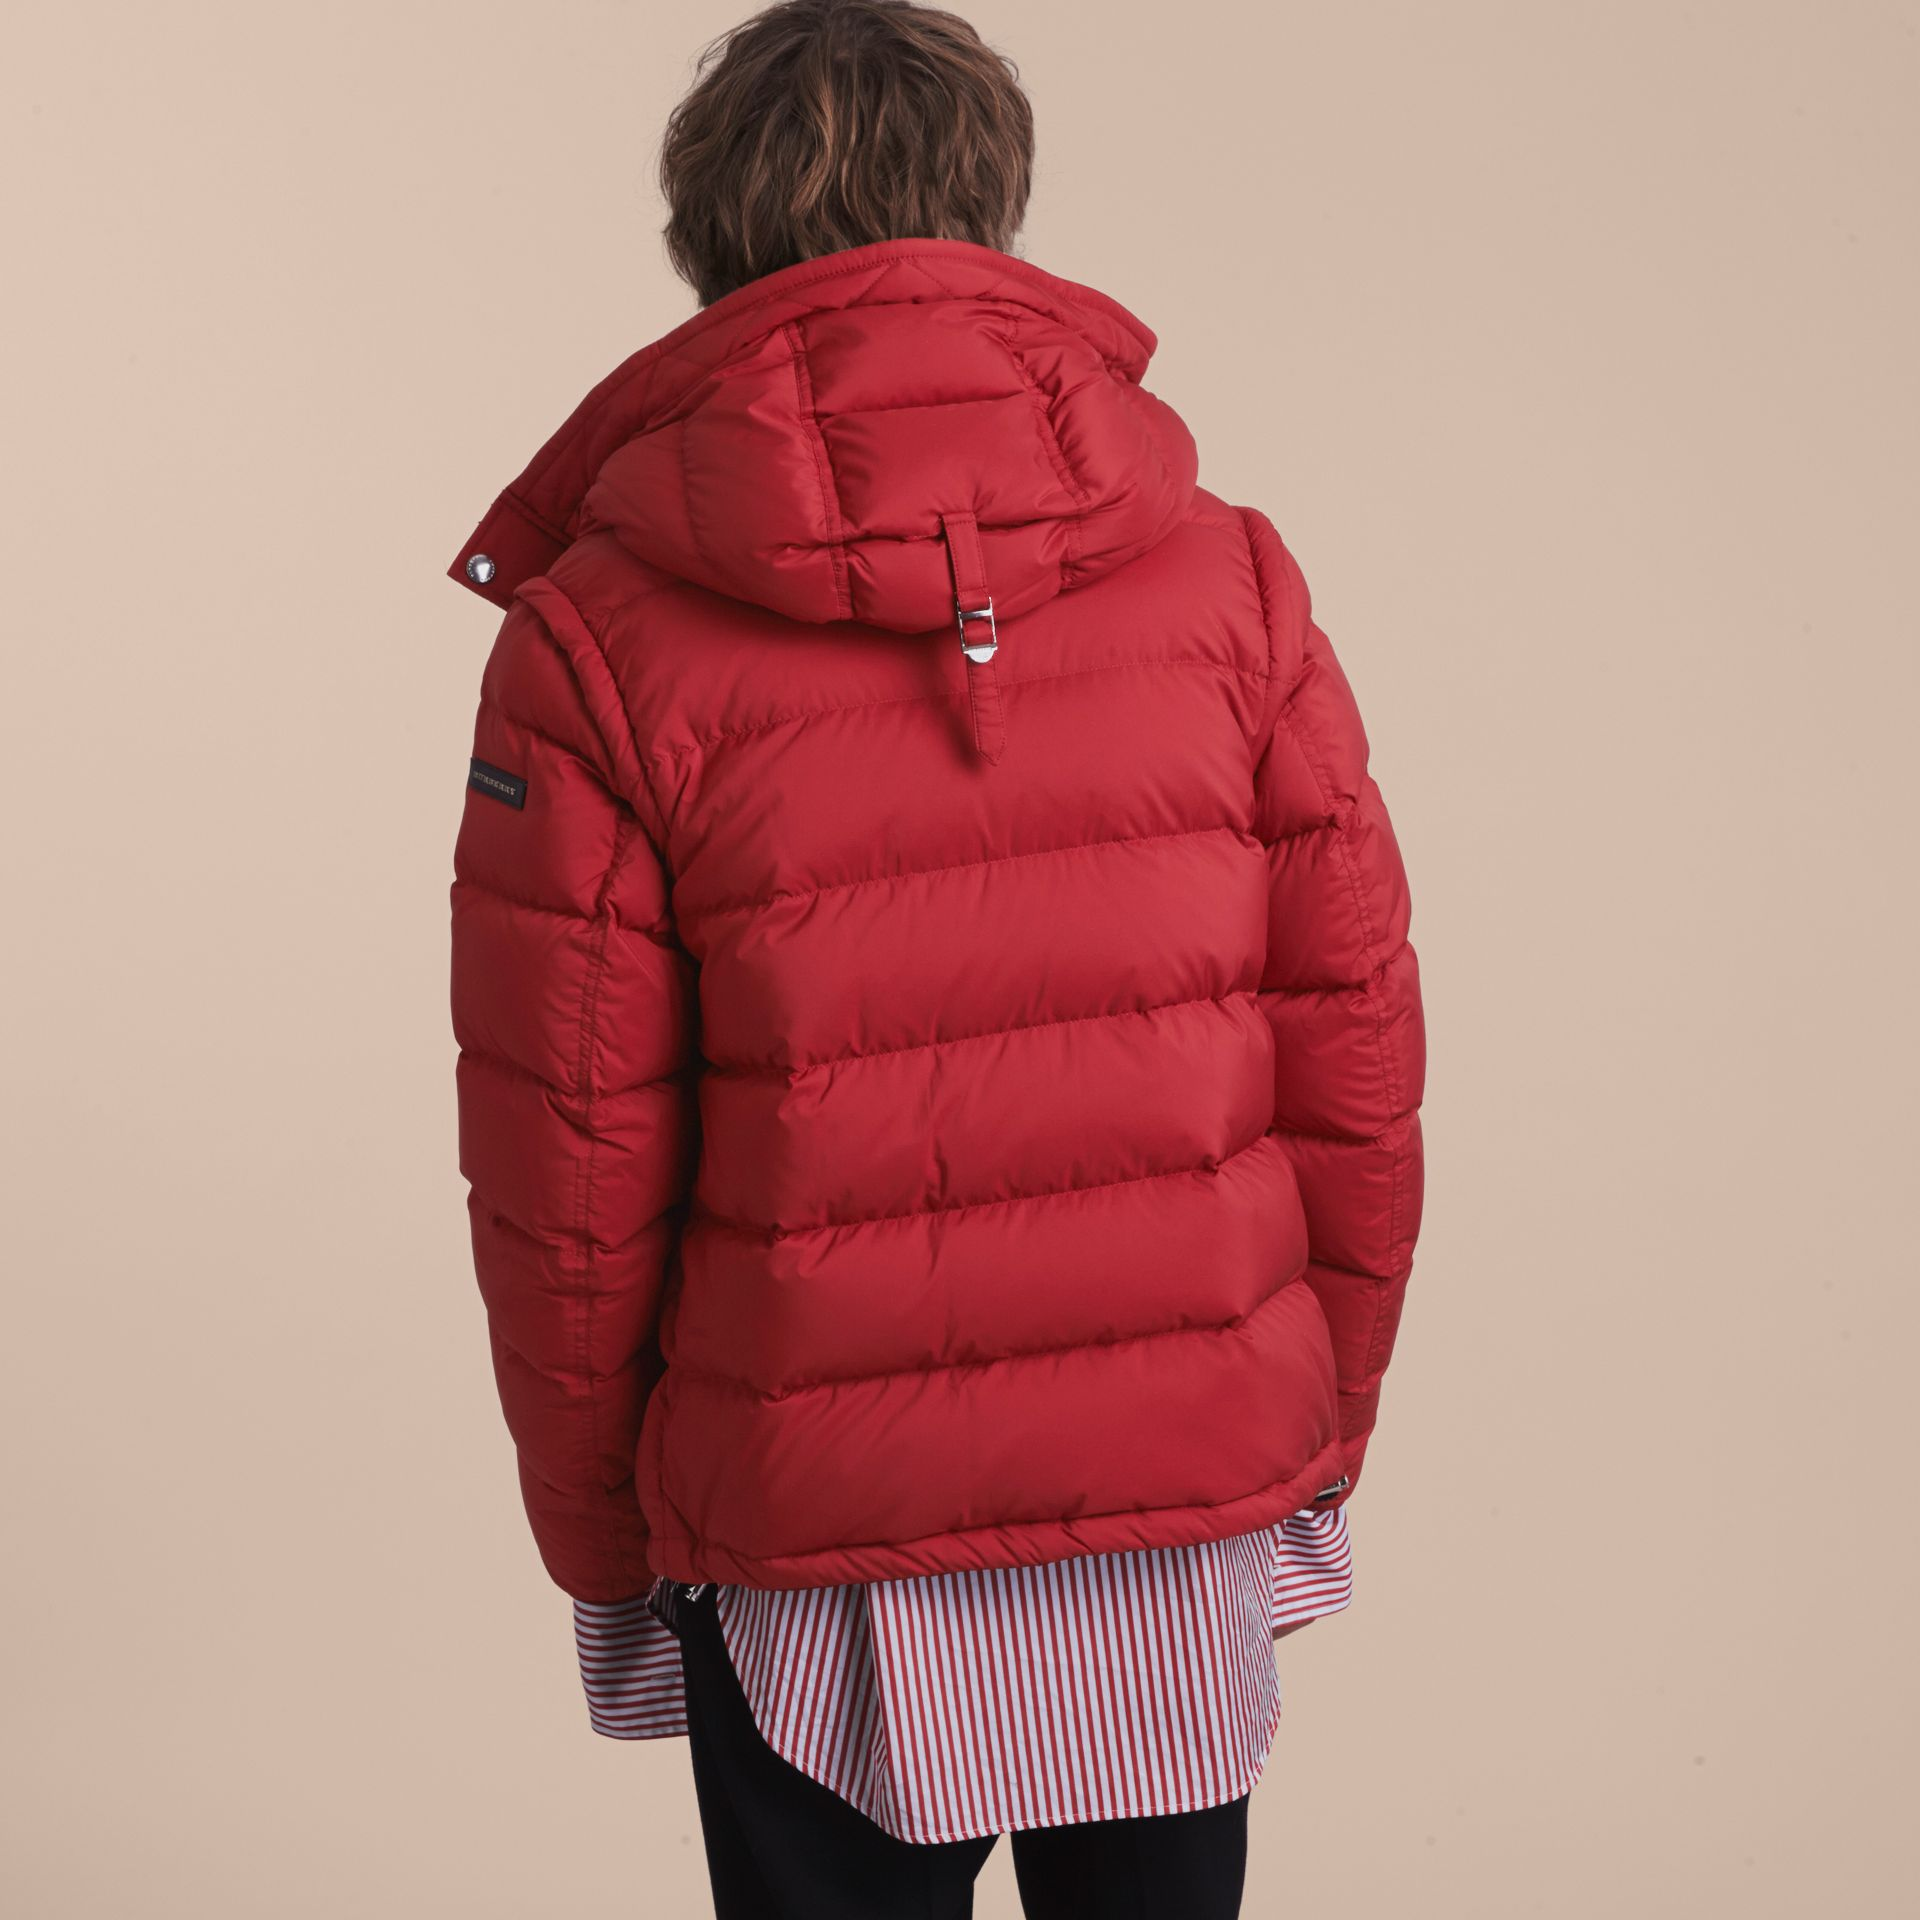 Down-filled Hooded Jacket with Detachable Sleeves in Parade Red - gallery image 7